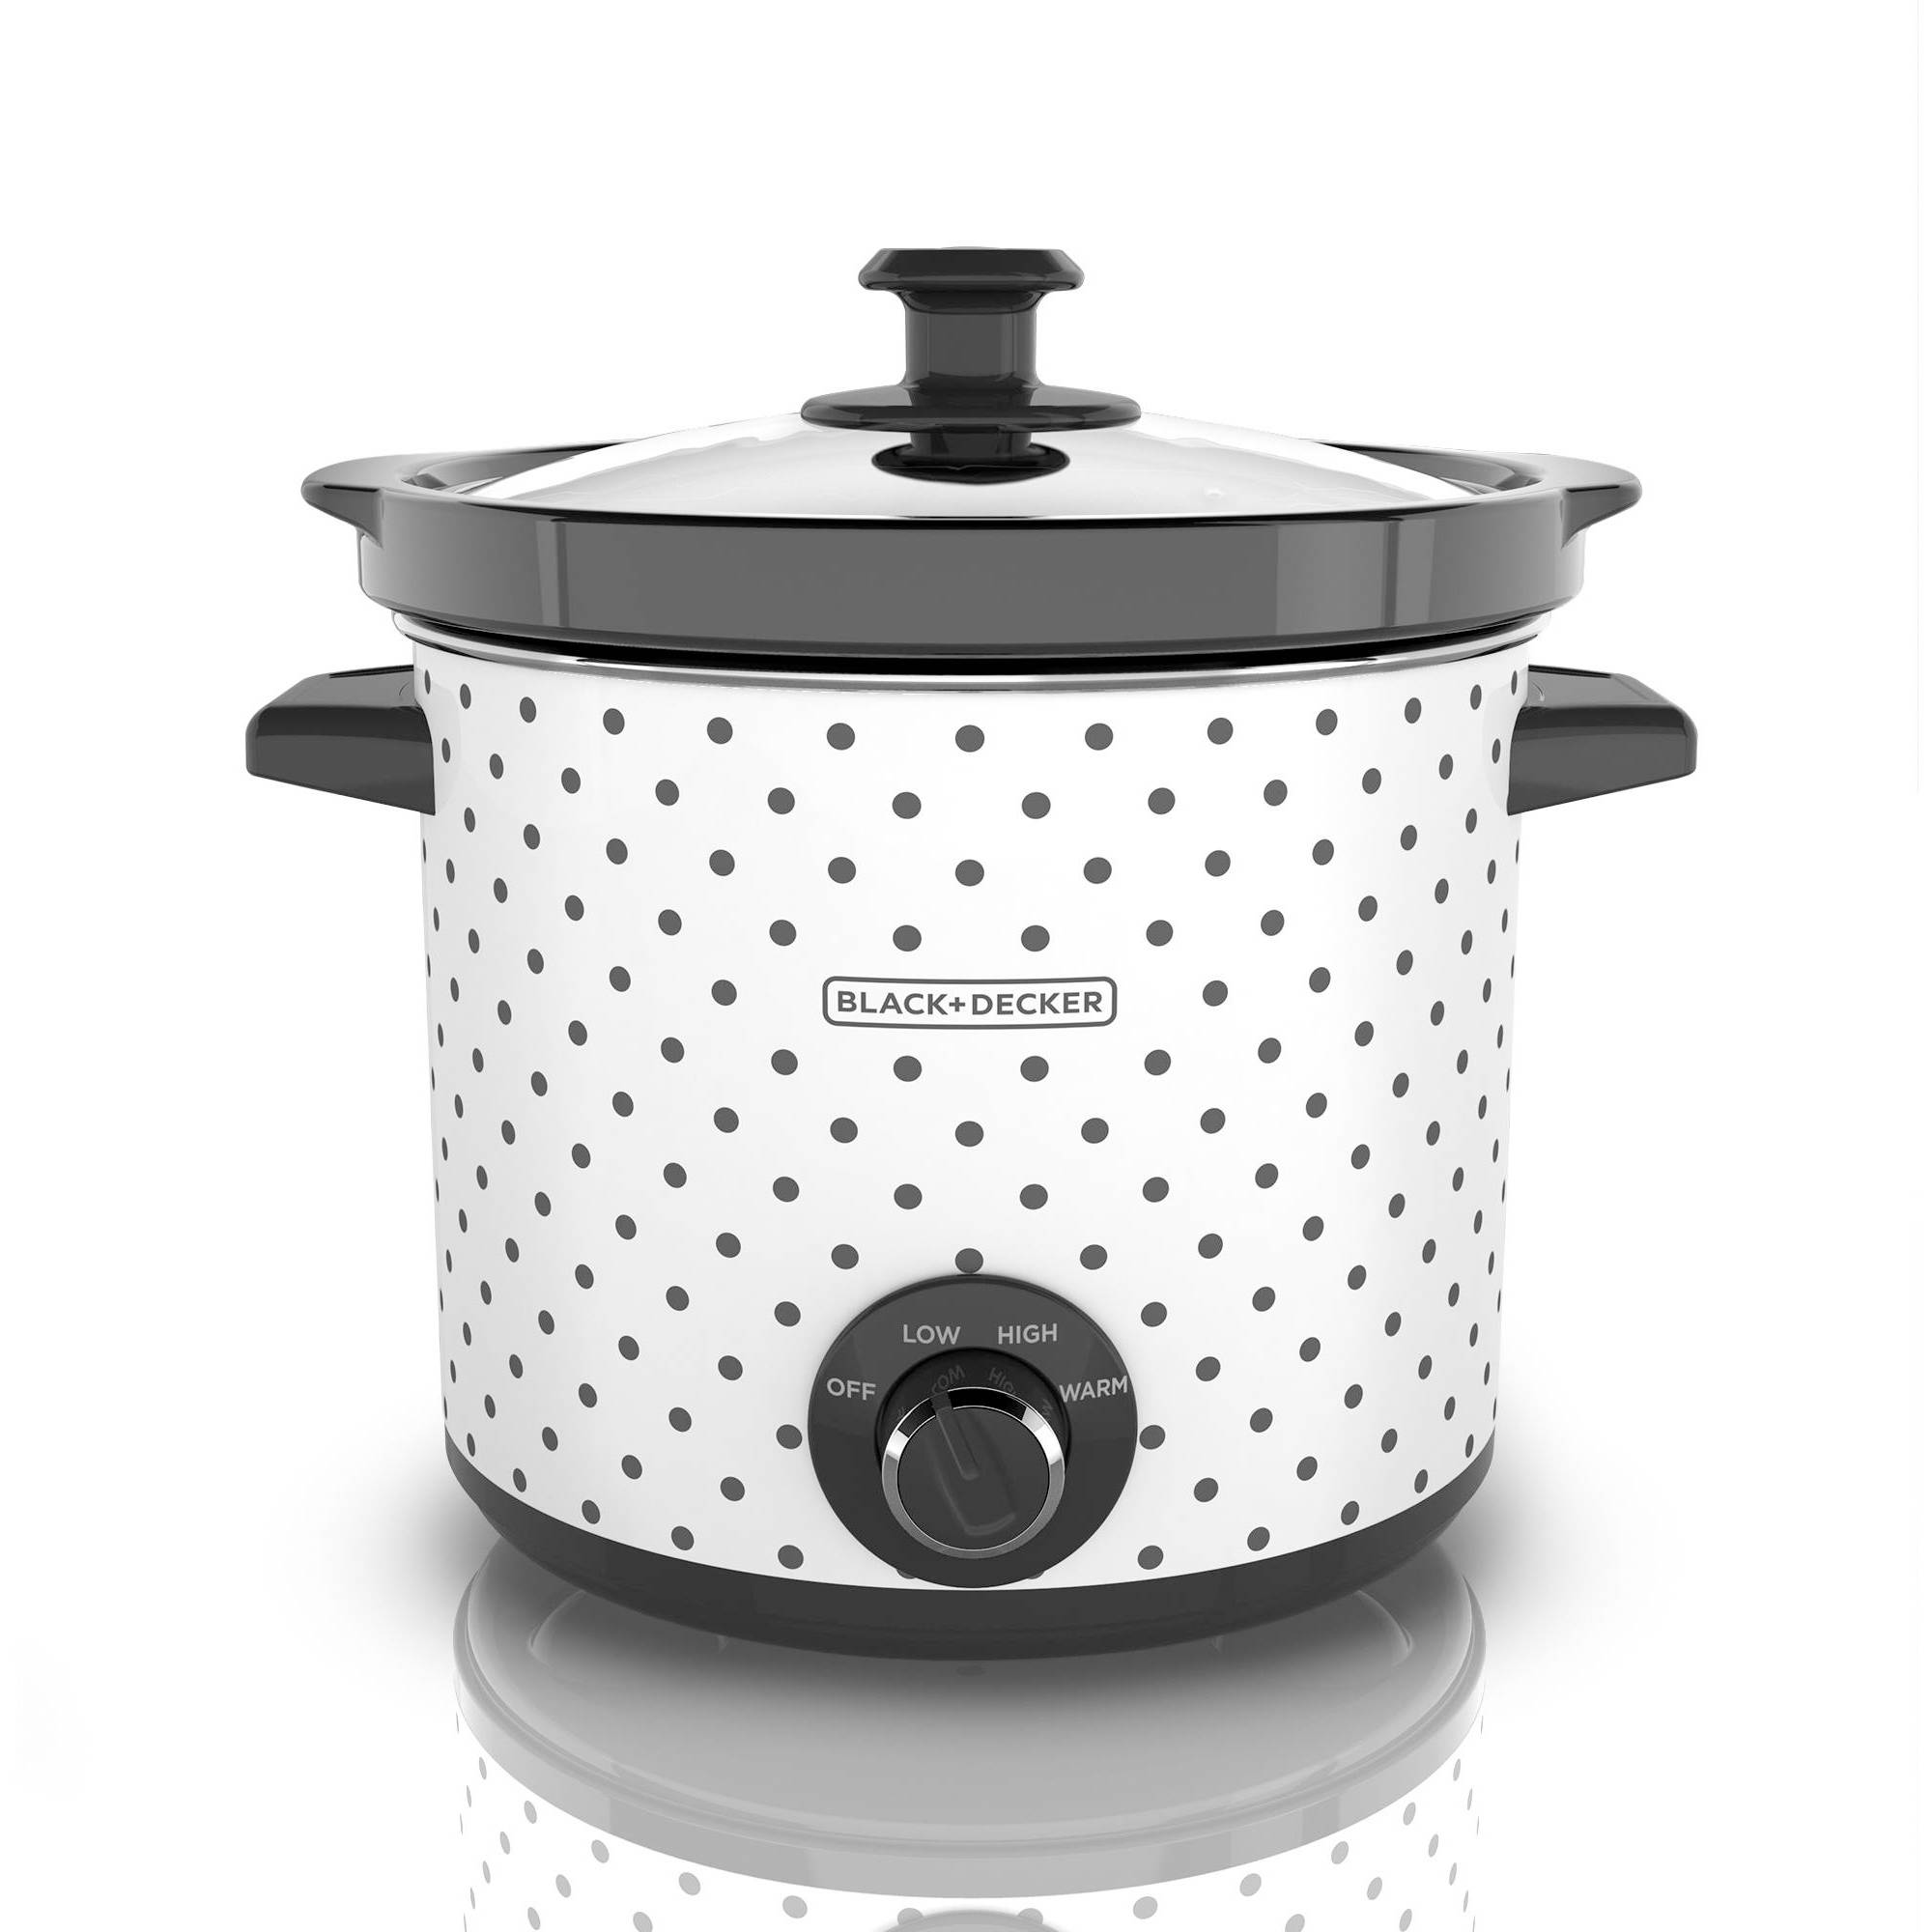 Black and Decker 4-Quart Slow Cooker with 3 Heat Settings